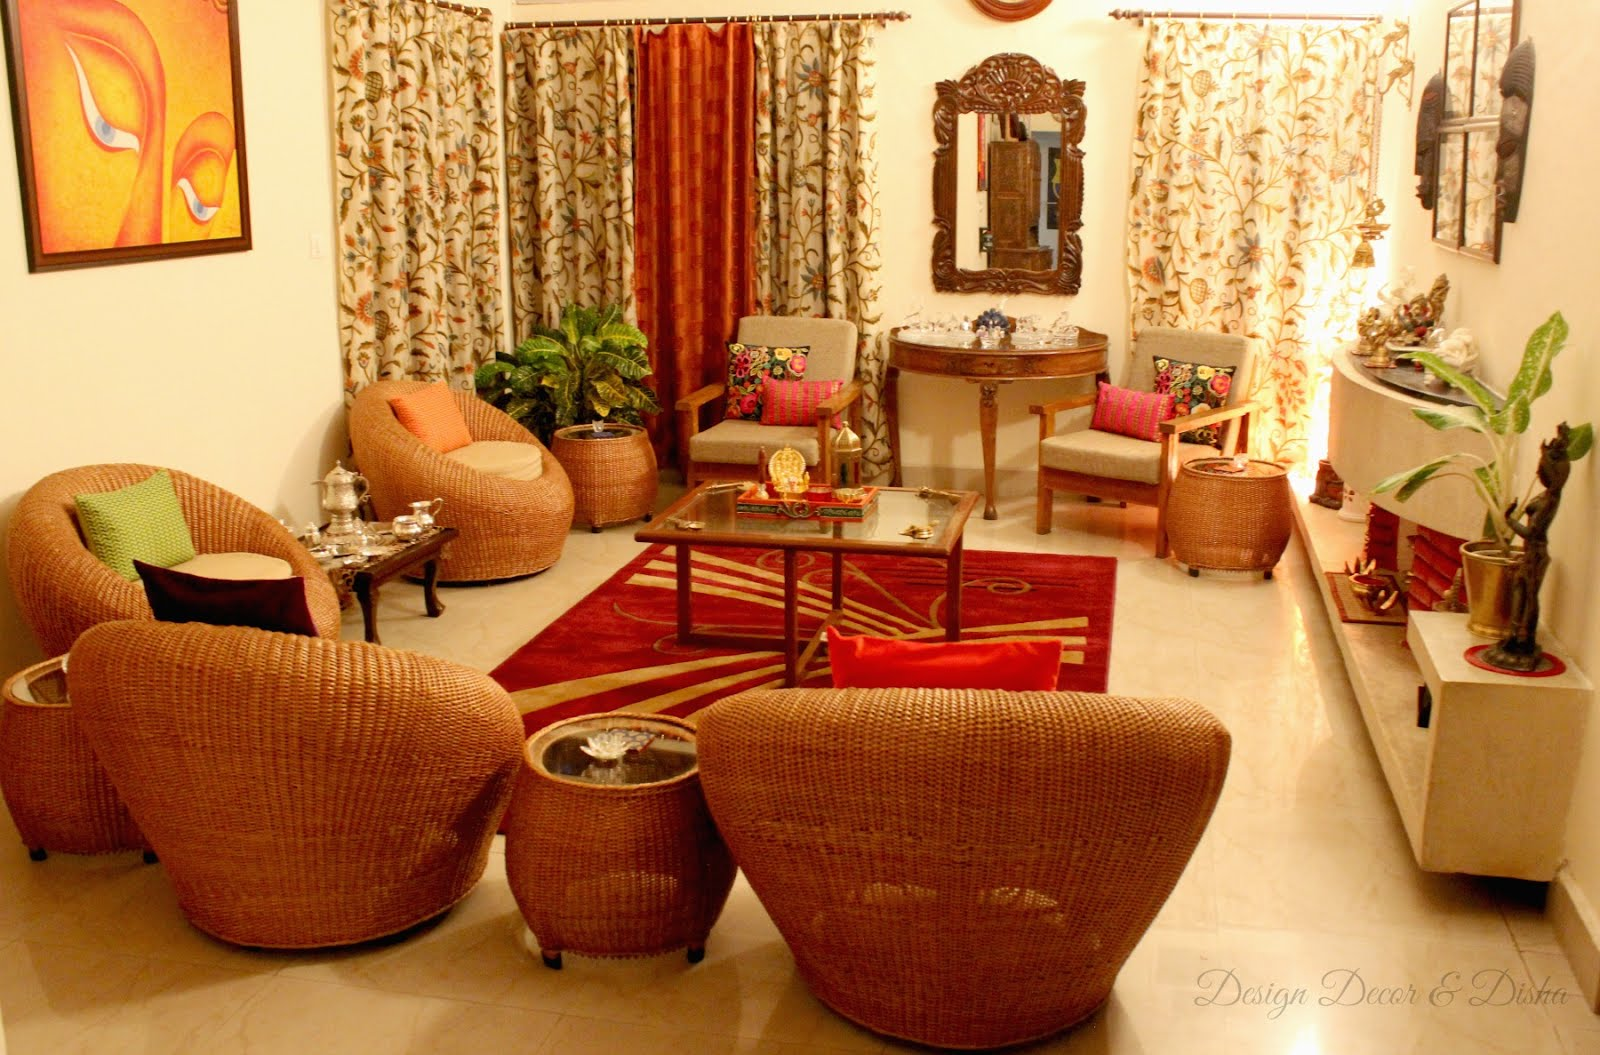 Design Decor Disha An Indian Design Decor Blog Home Home Decorators Catalog Best Ideas of Home Decor and Design [homedecoratorscatalog.us]